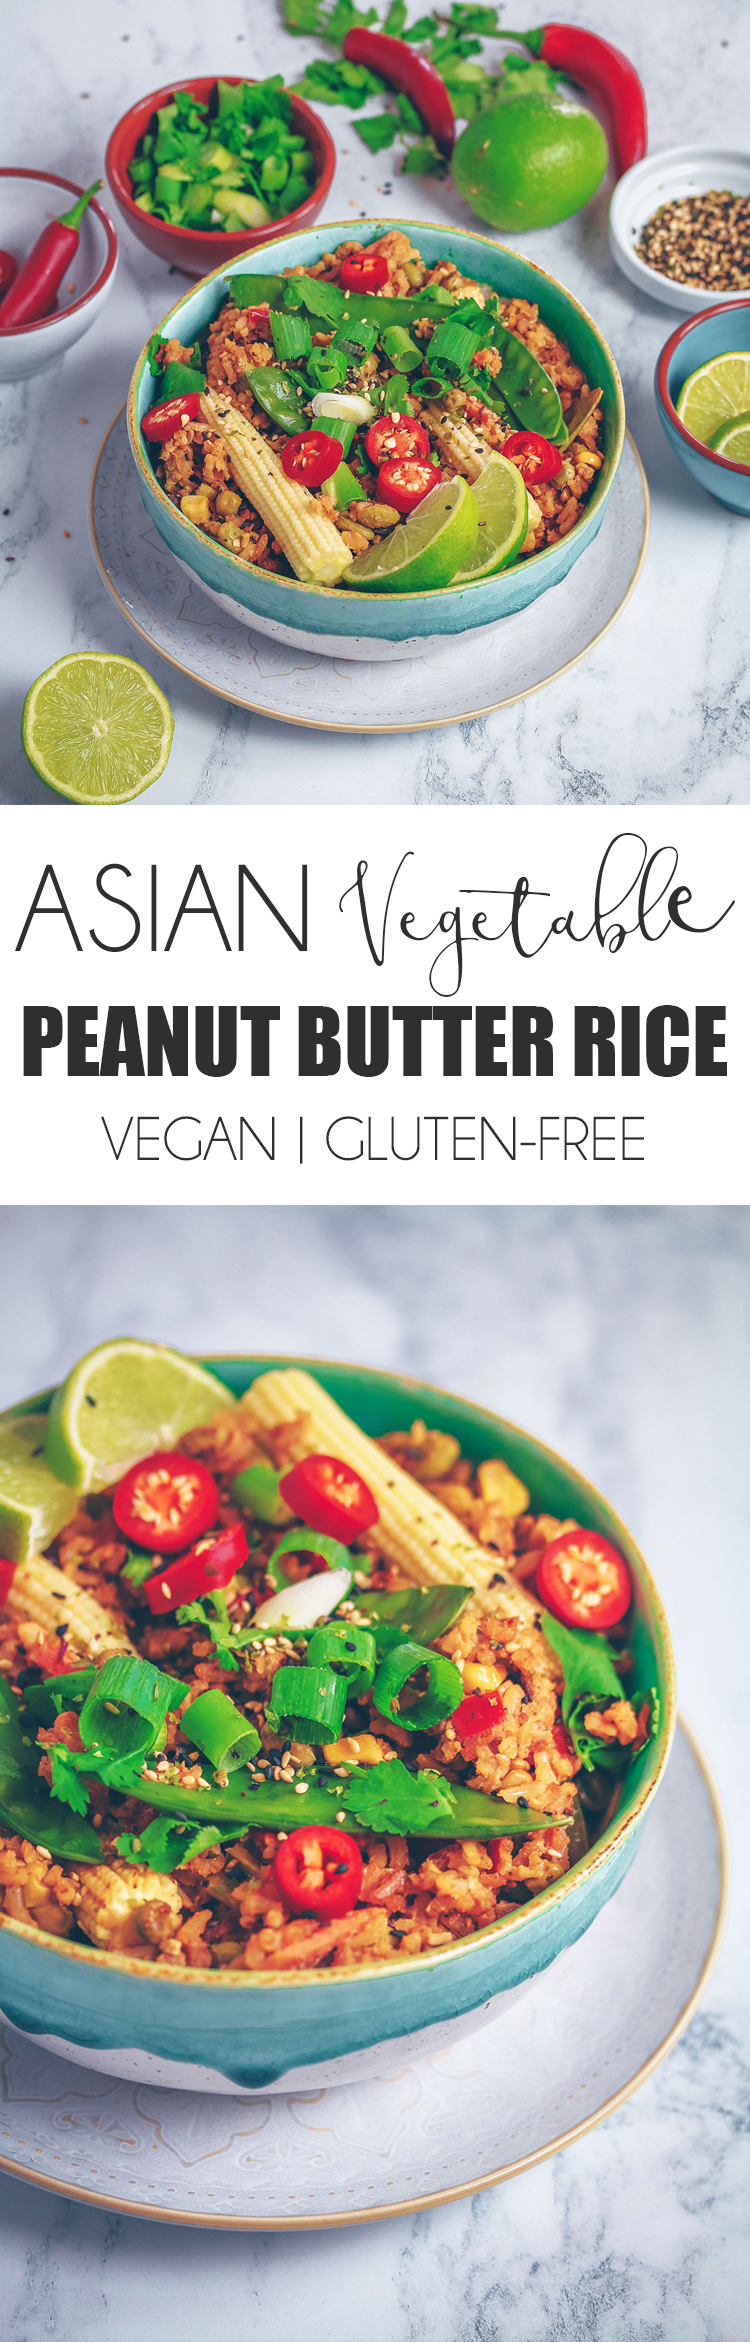 Asian vegetable peanut butter rice uk health blog nadias commissioned posts is how im able to continue working on the blog and creating recipes and recipe videos for you forumfinder Choice Image